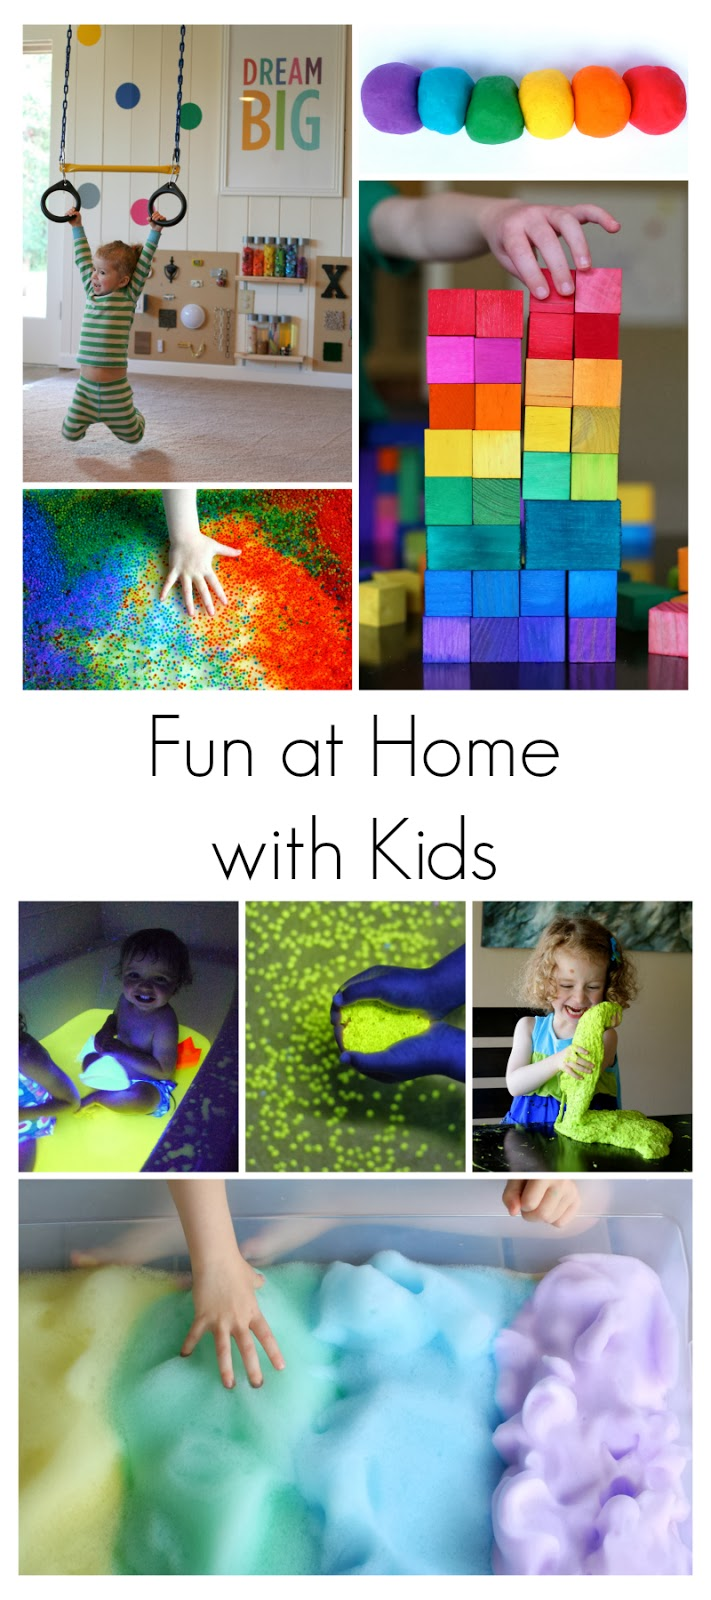 Our 15 Best Activities for Babies, Toddlers, and Preschoolers